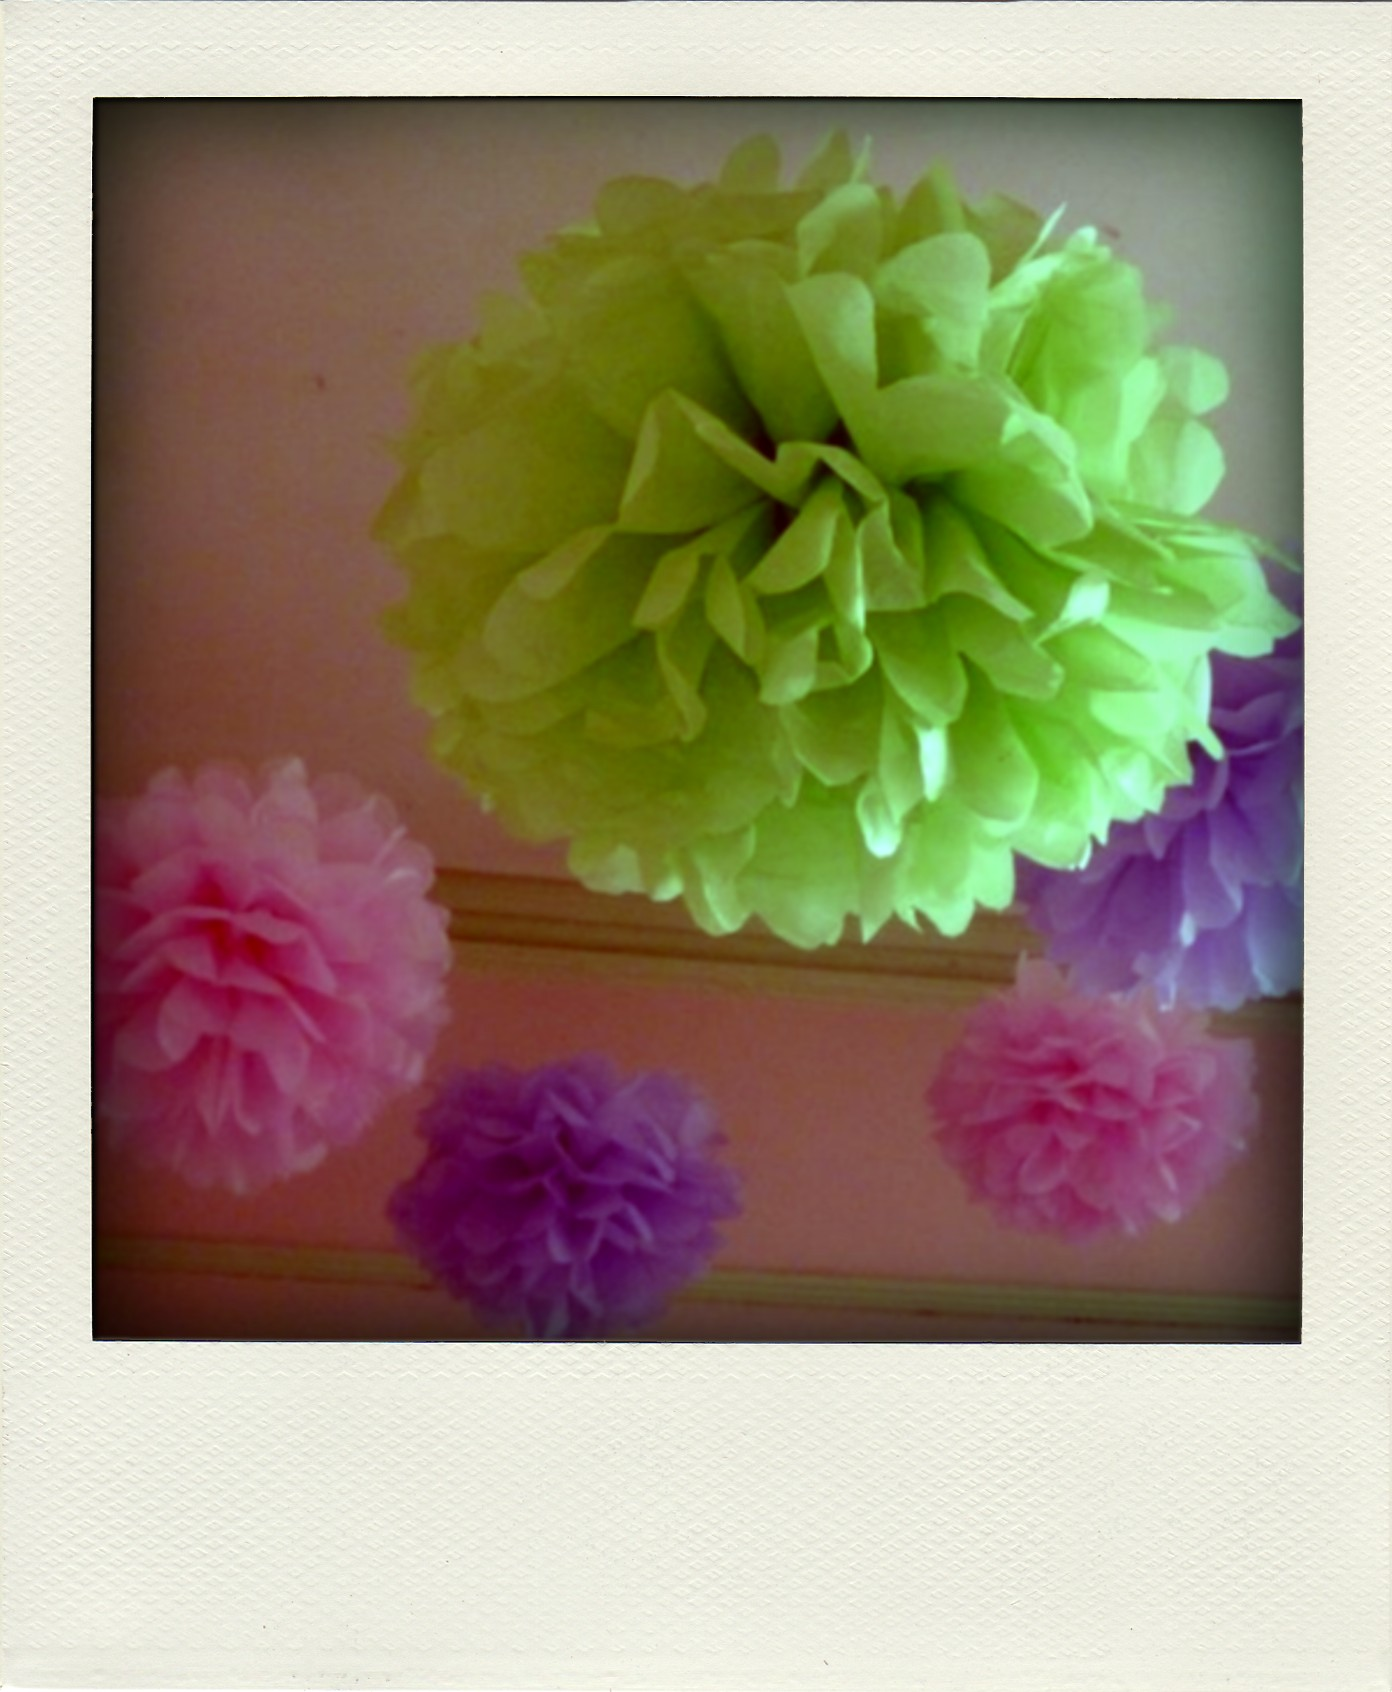 Easy To Make Paper Ceiling Flowers Fur Coat No Knickers